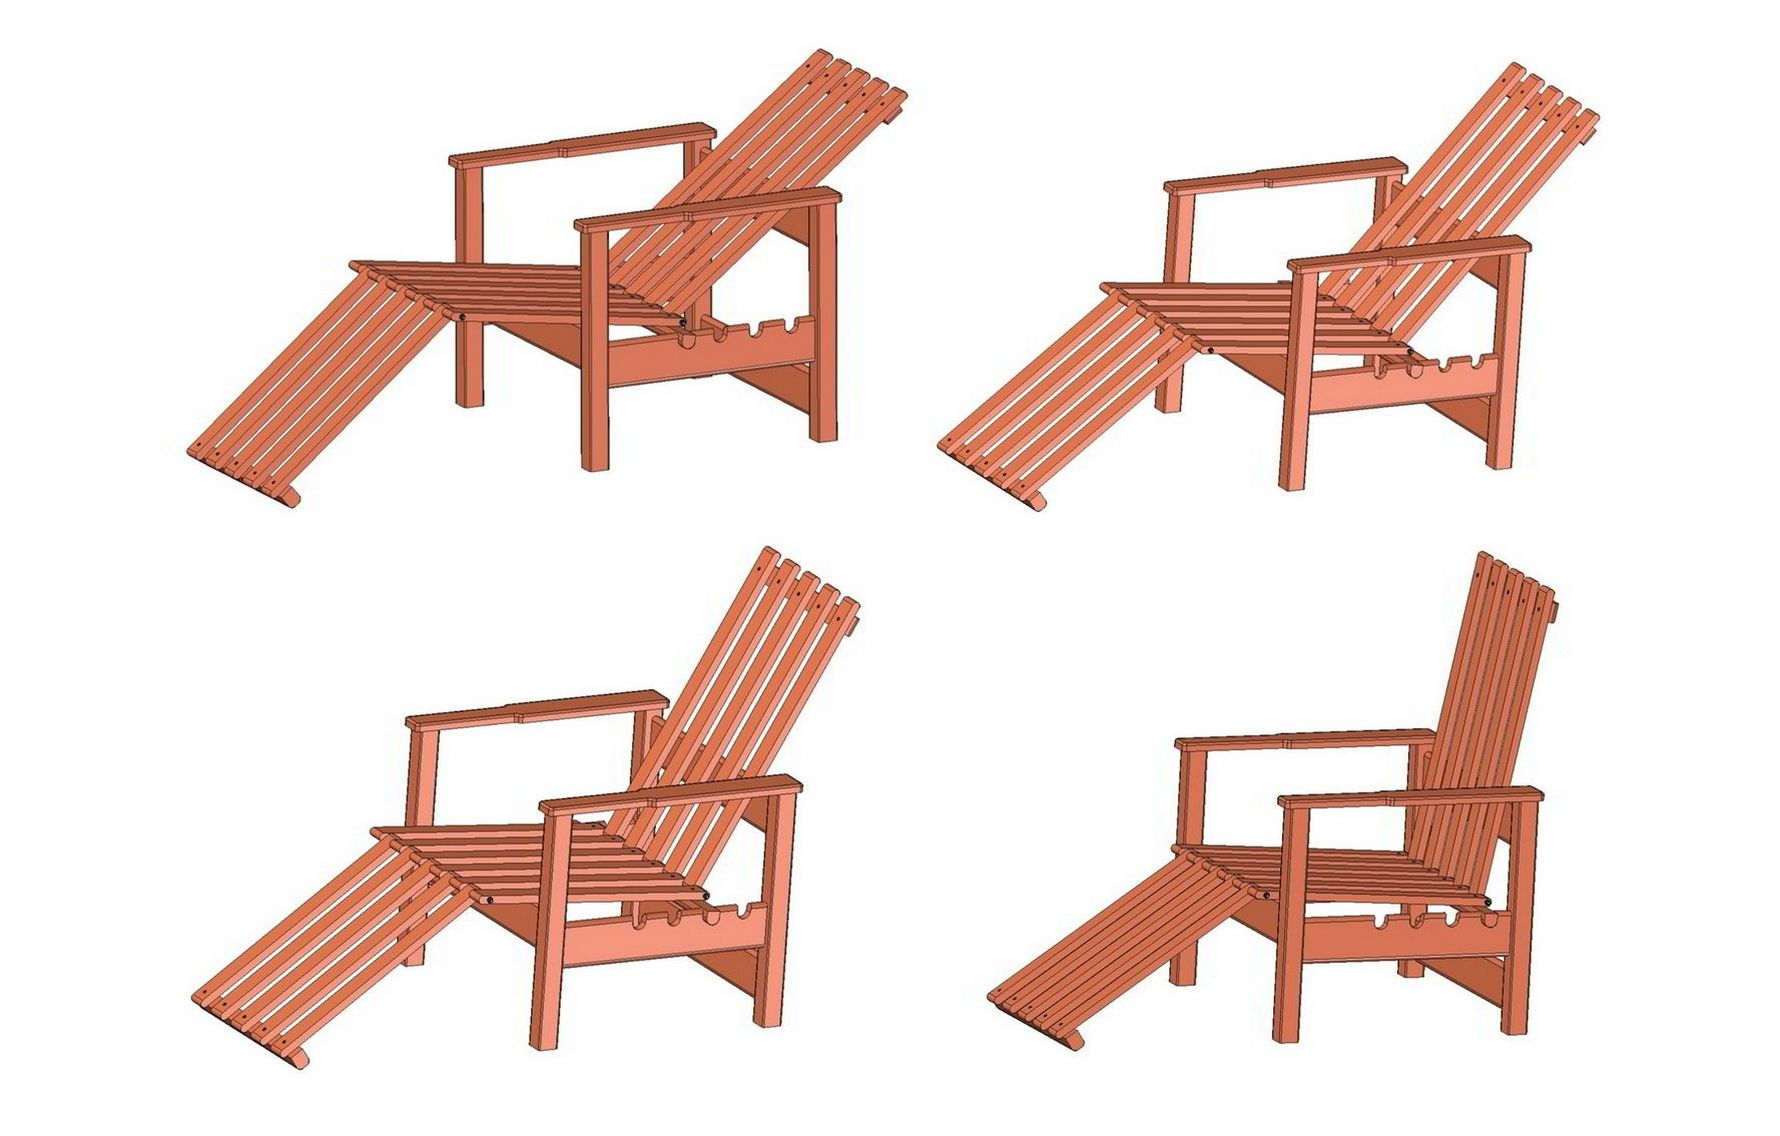 Wood Chair Plans Free ~ Wooden chair plans free download